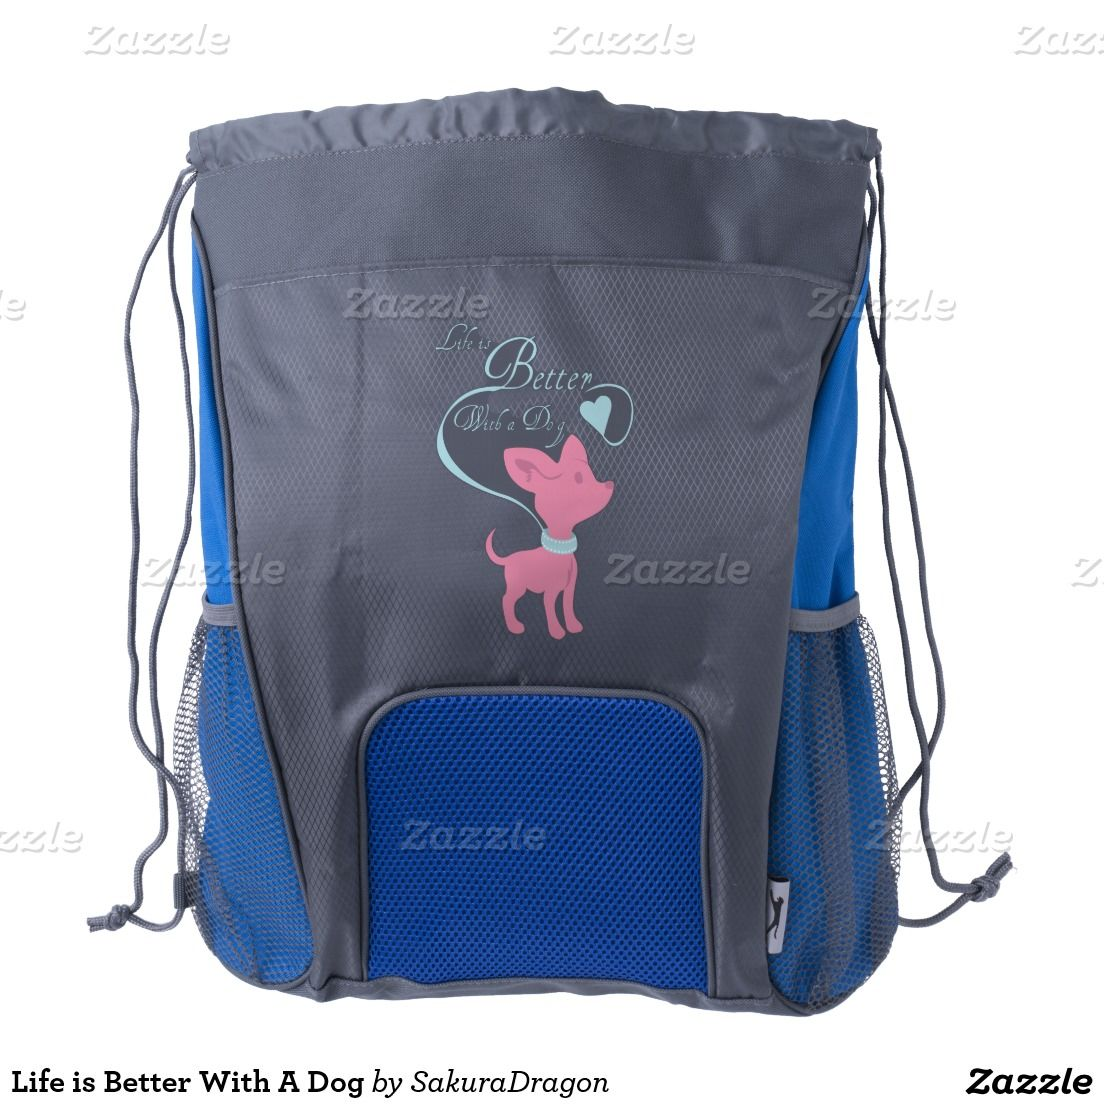 Life is Better With A Dog Drawstring Backpack #dogs #puppy #animals #chihuahua #pink